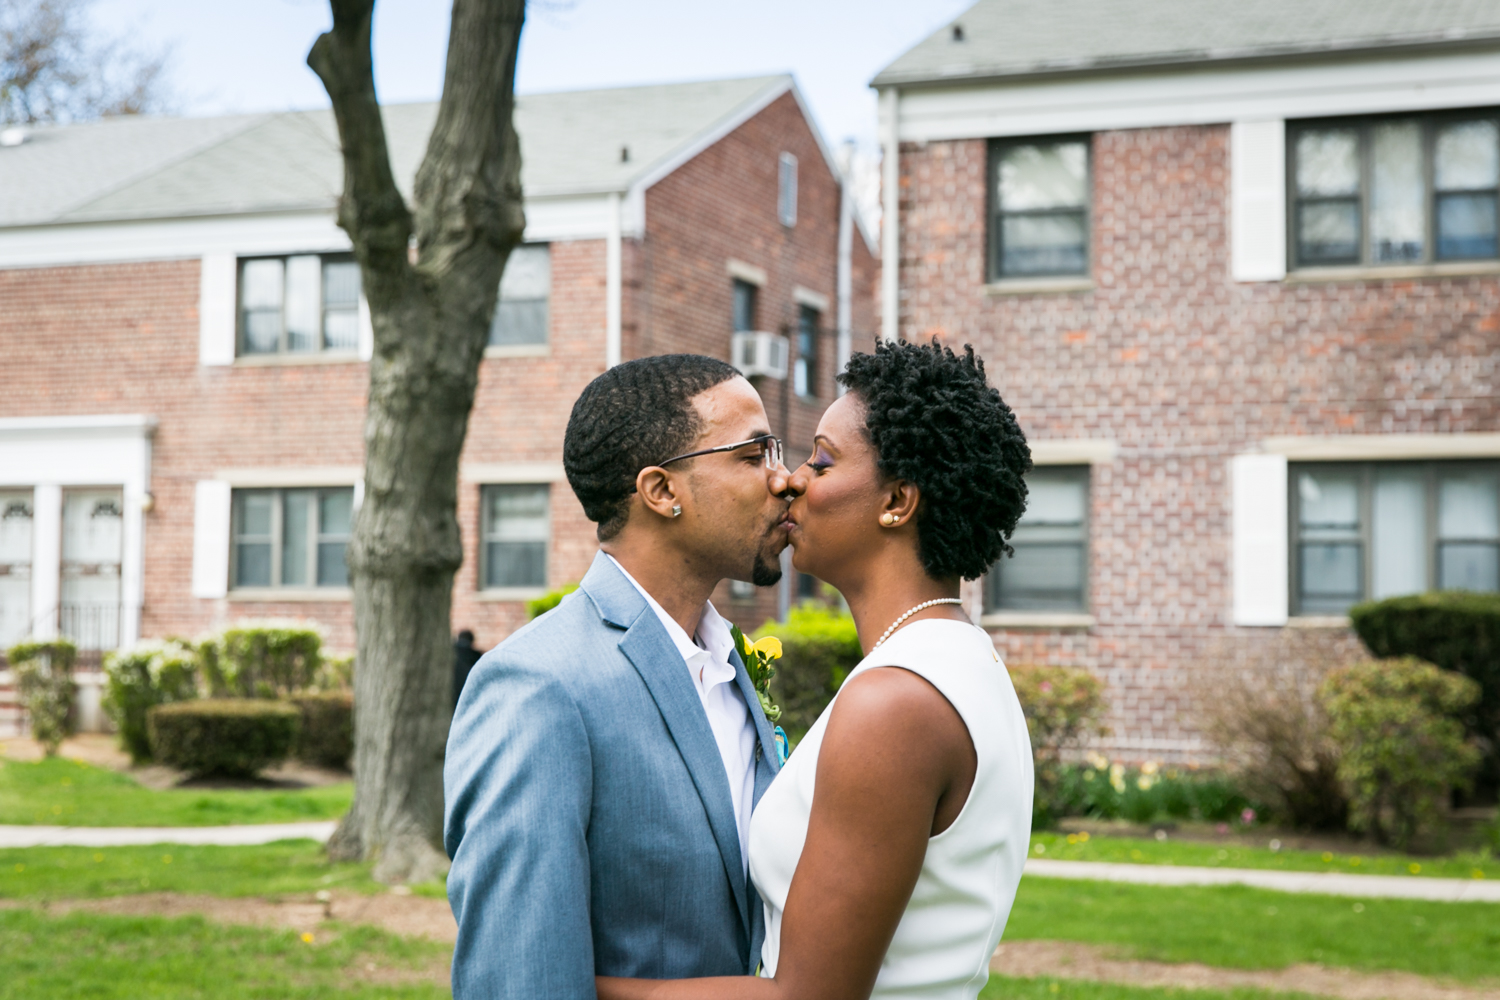 Bride and groom kissing after first look at a Flushing Meadows Corona Park wedding